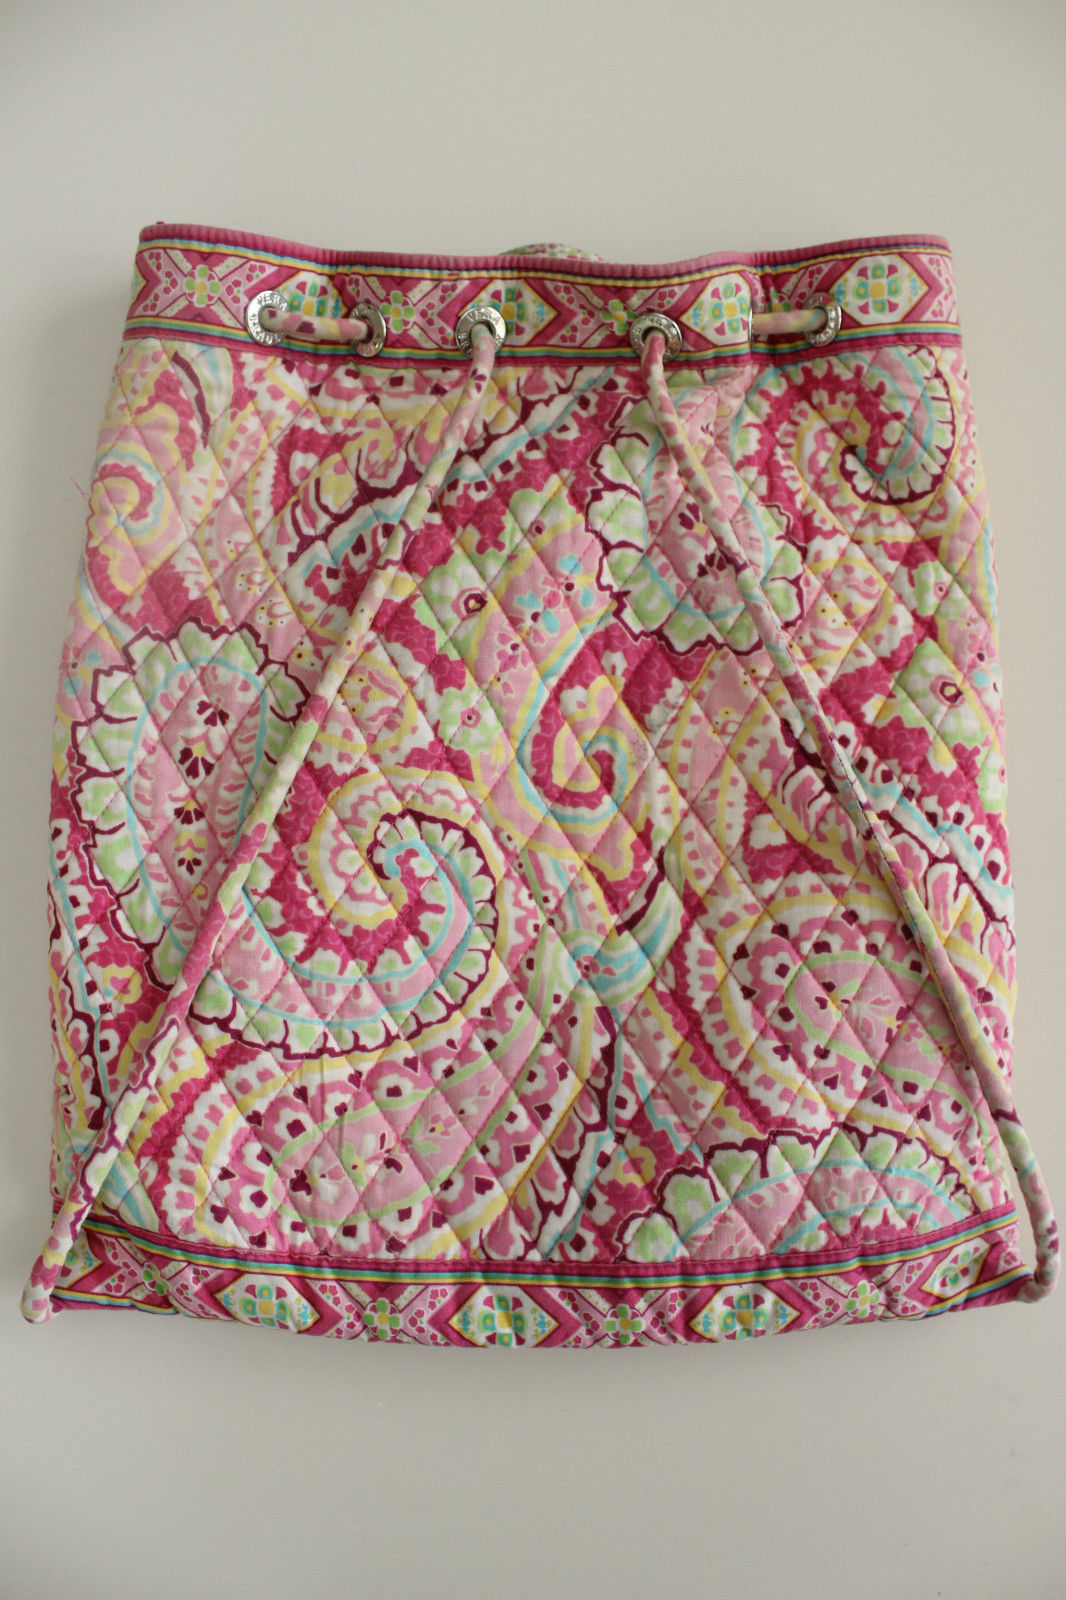 af1f081f7781 Vera Bradley drawstring backpack purse in retired Capri Melon pattern